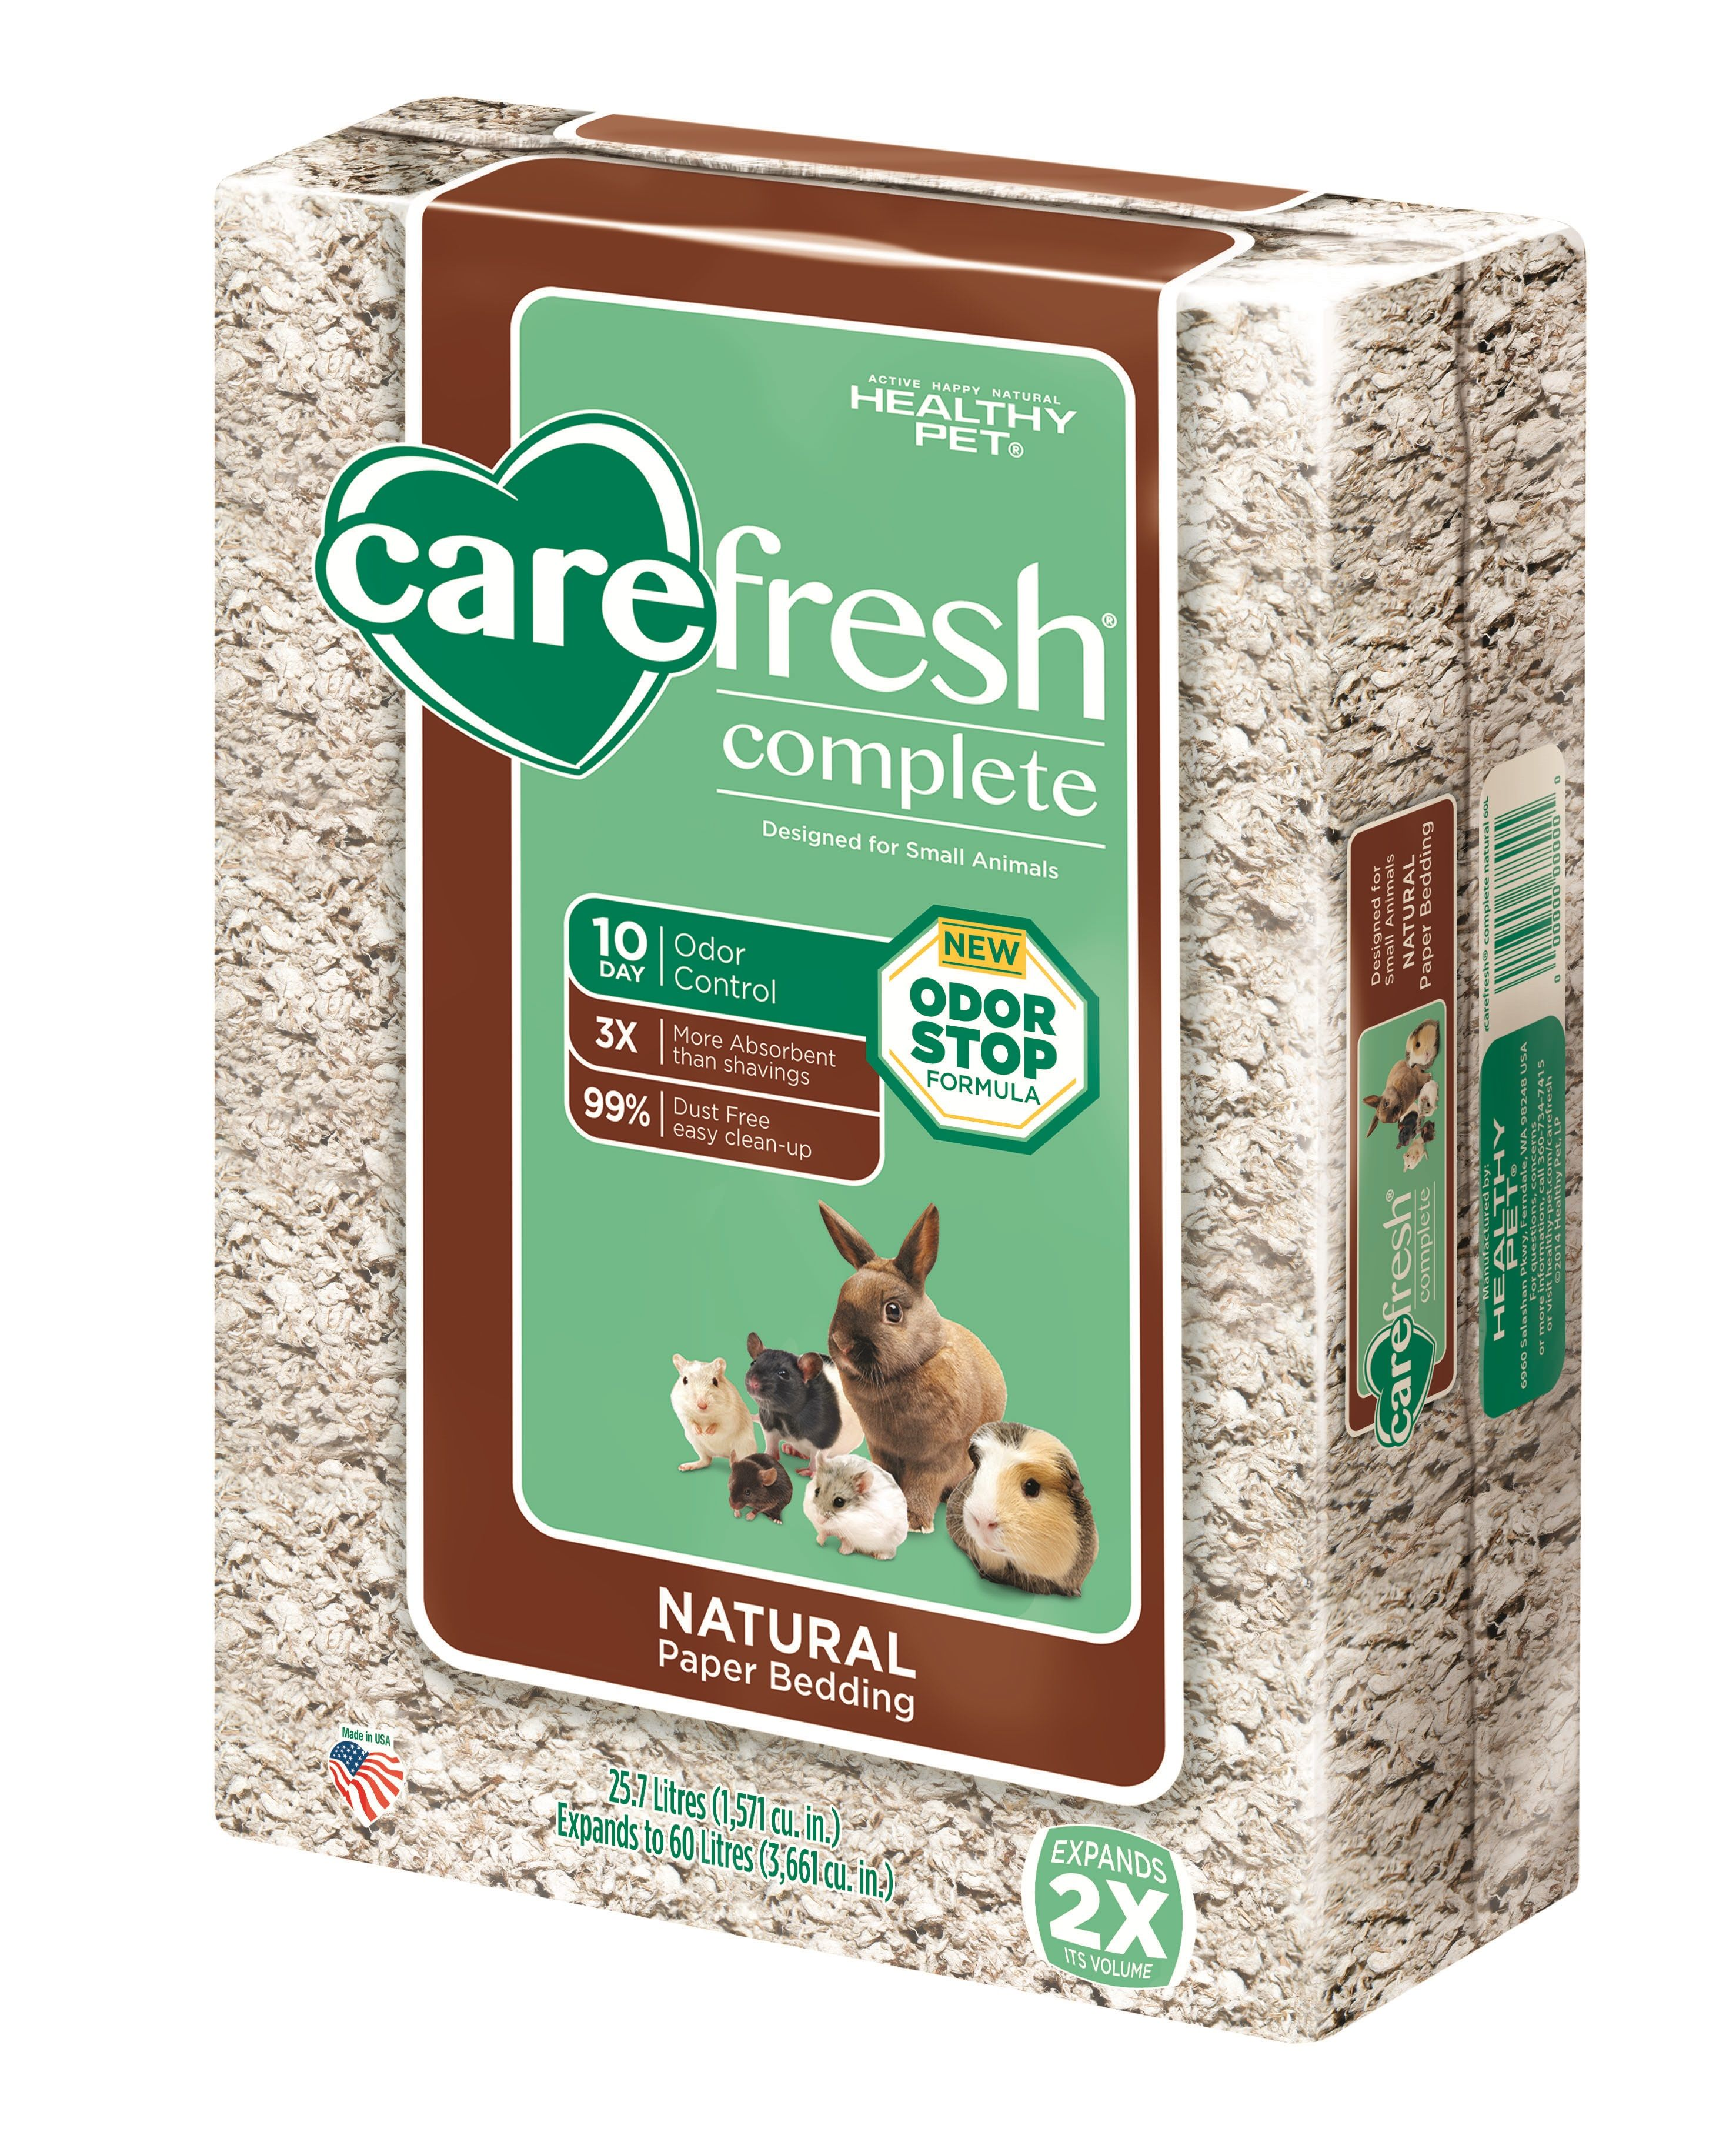 Carefresh Complete Natural small animal bedding by Healthy